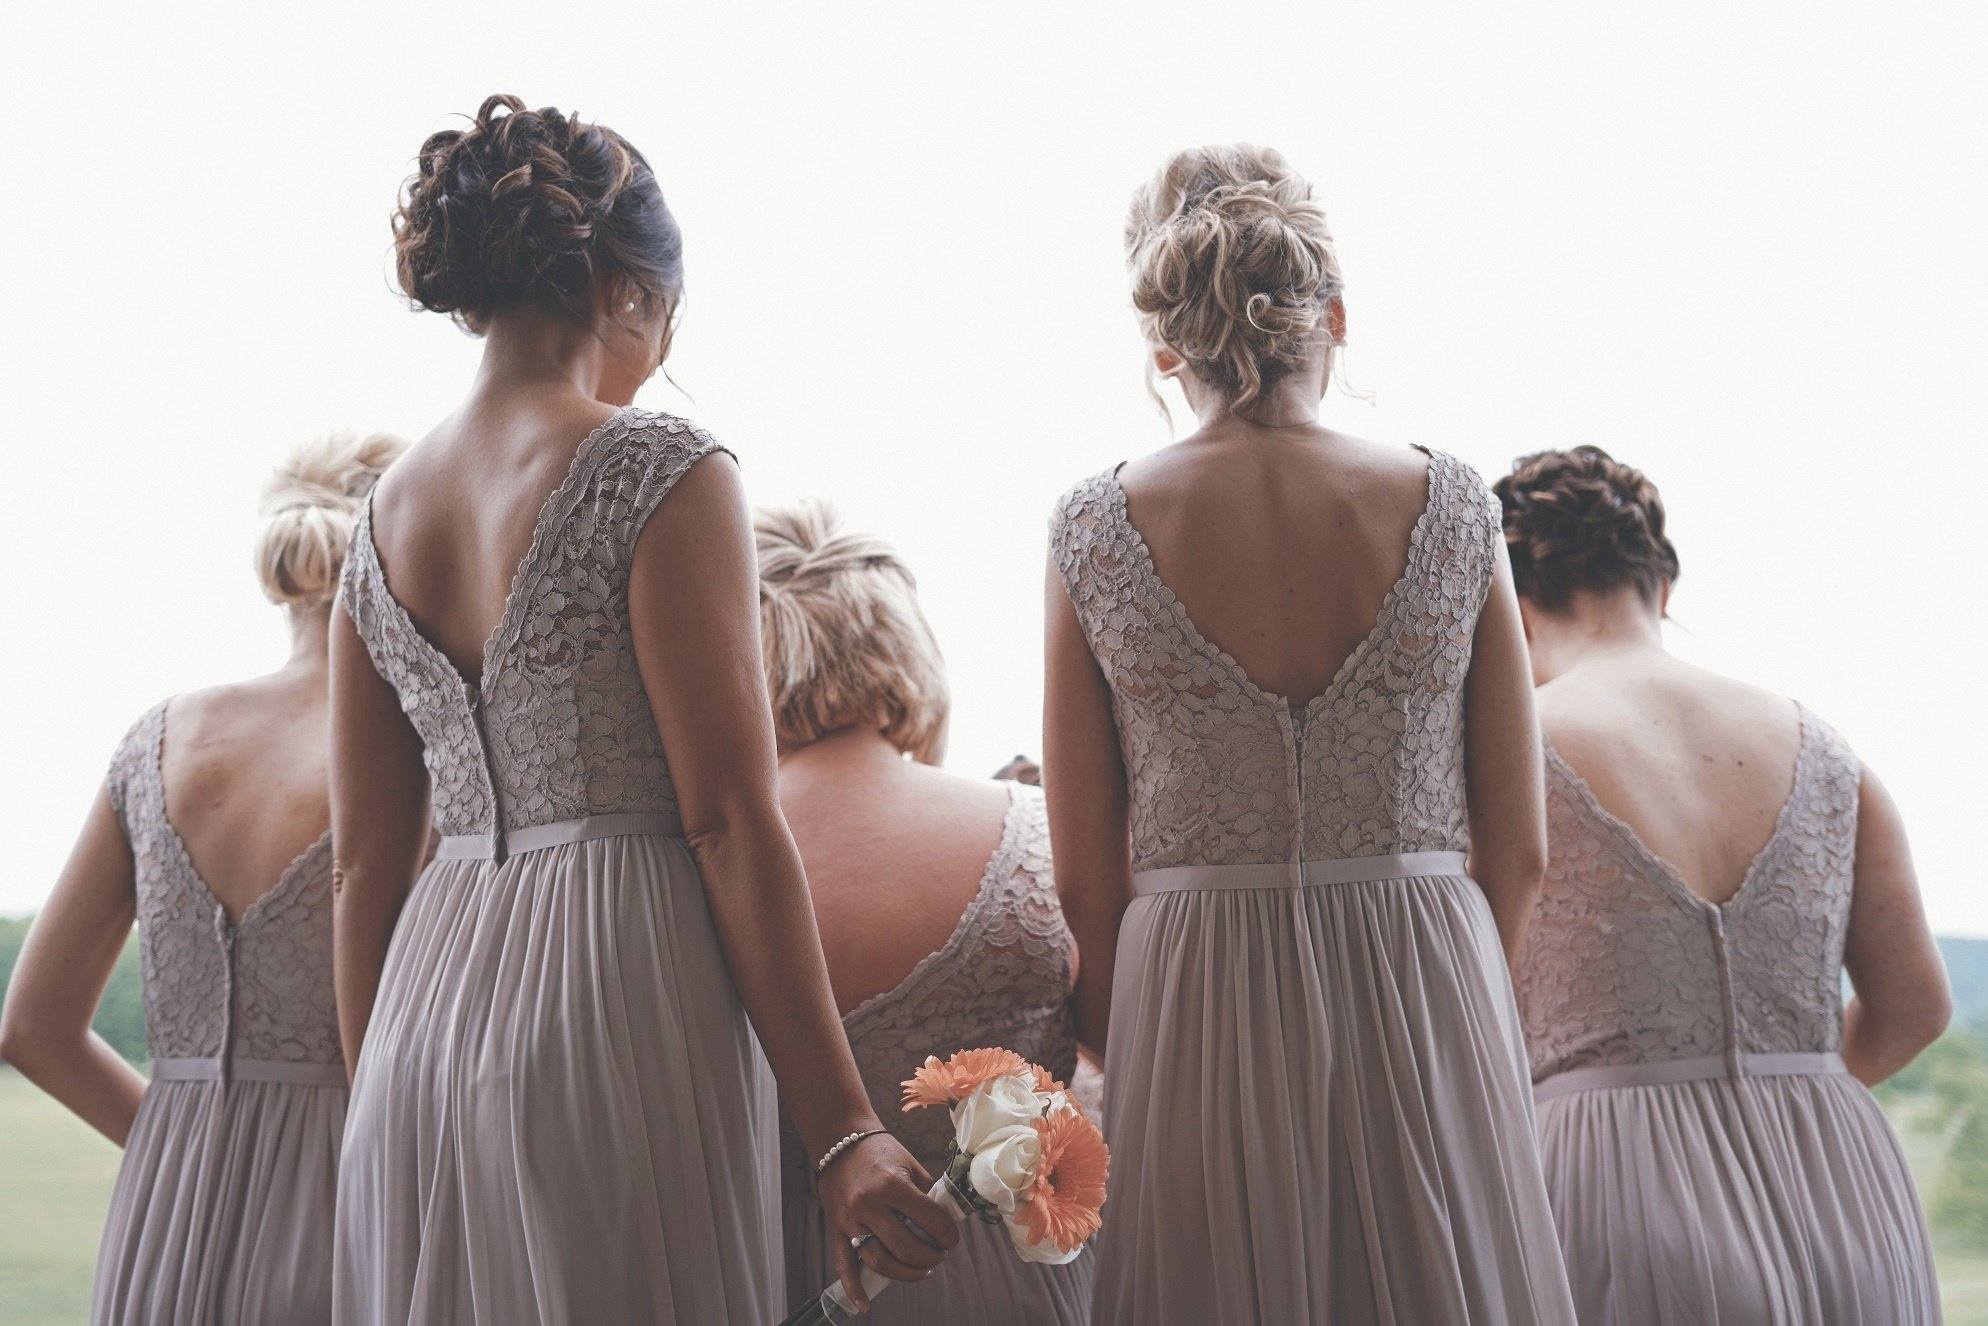 getting_wedding_bridal_customers_clients_for_your_hair_beauty_salon_with_website_strong_online_presence.jpg